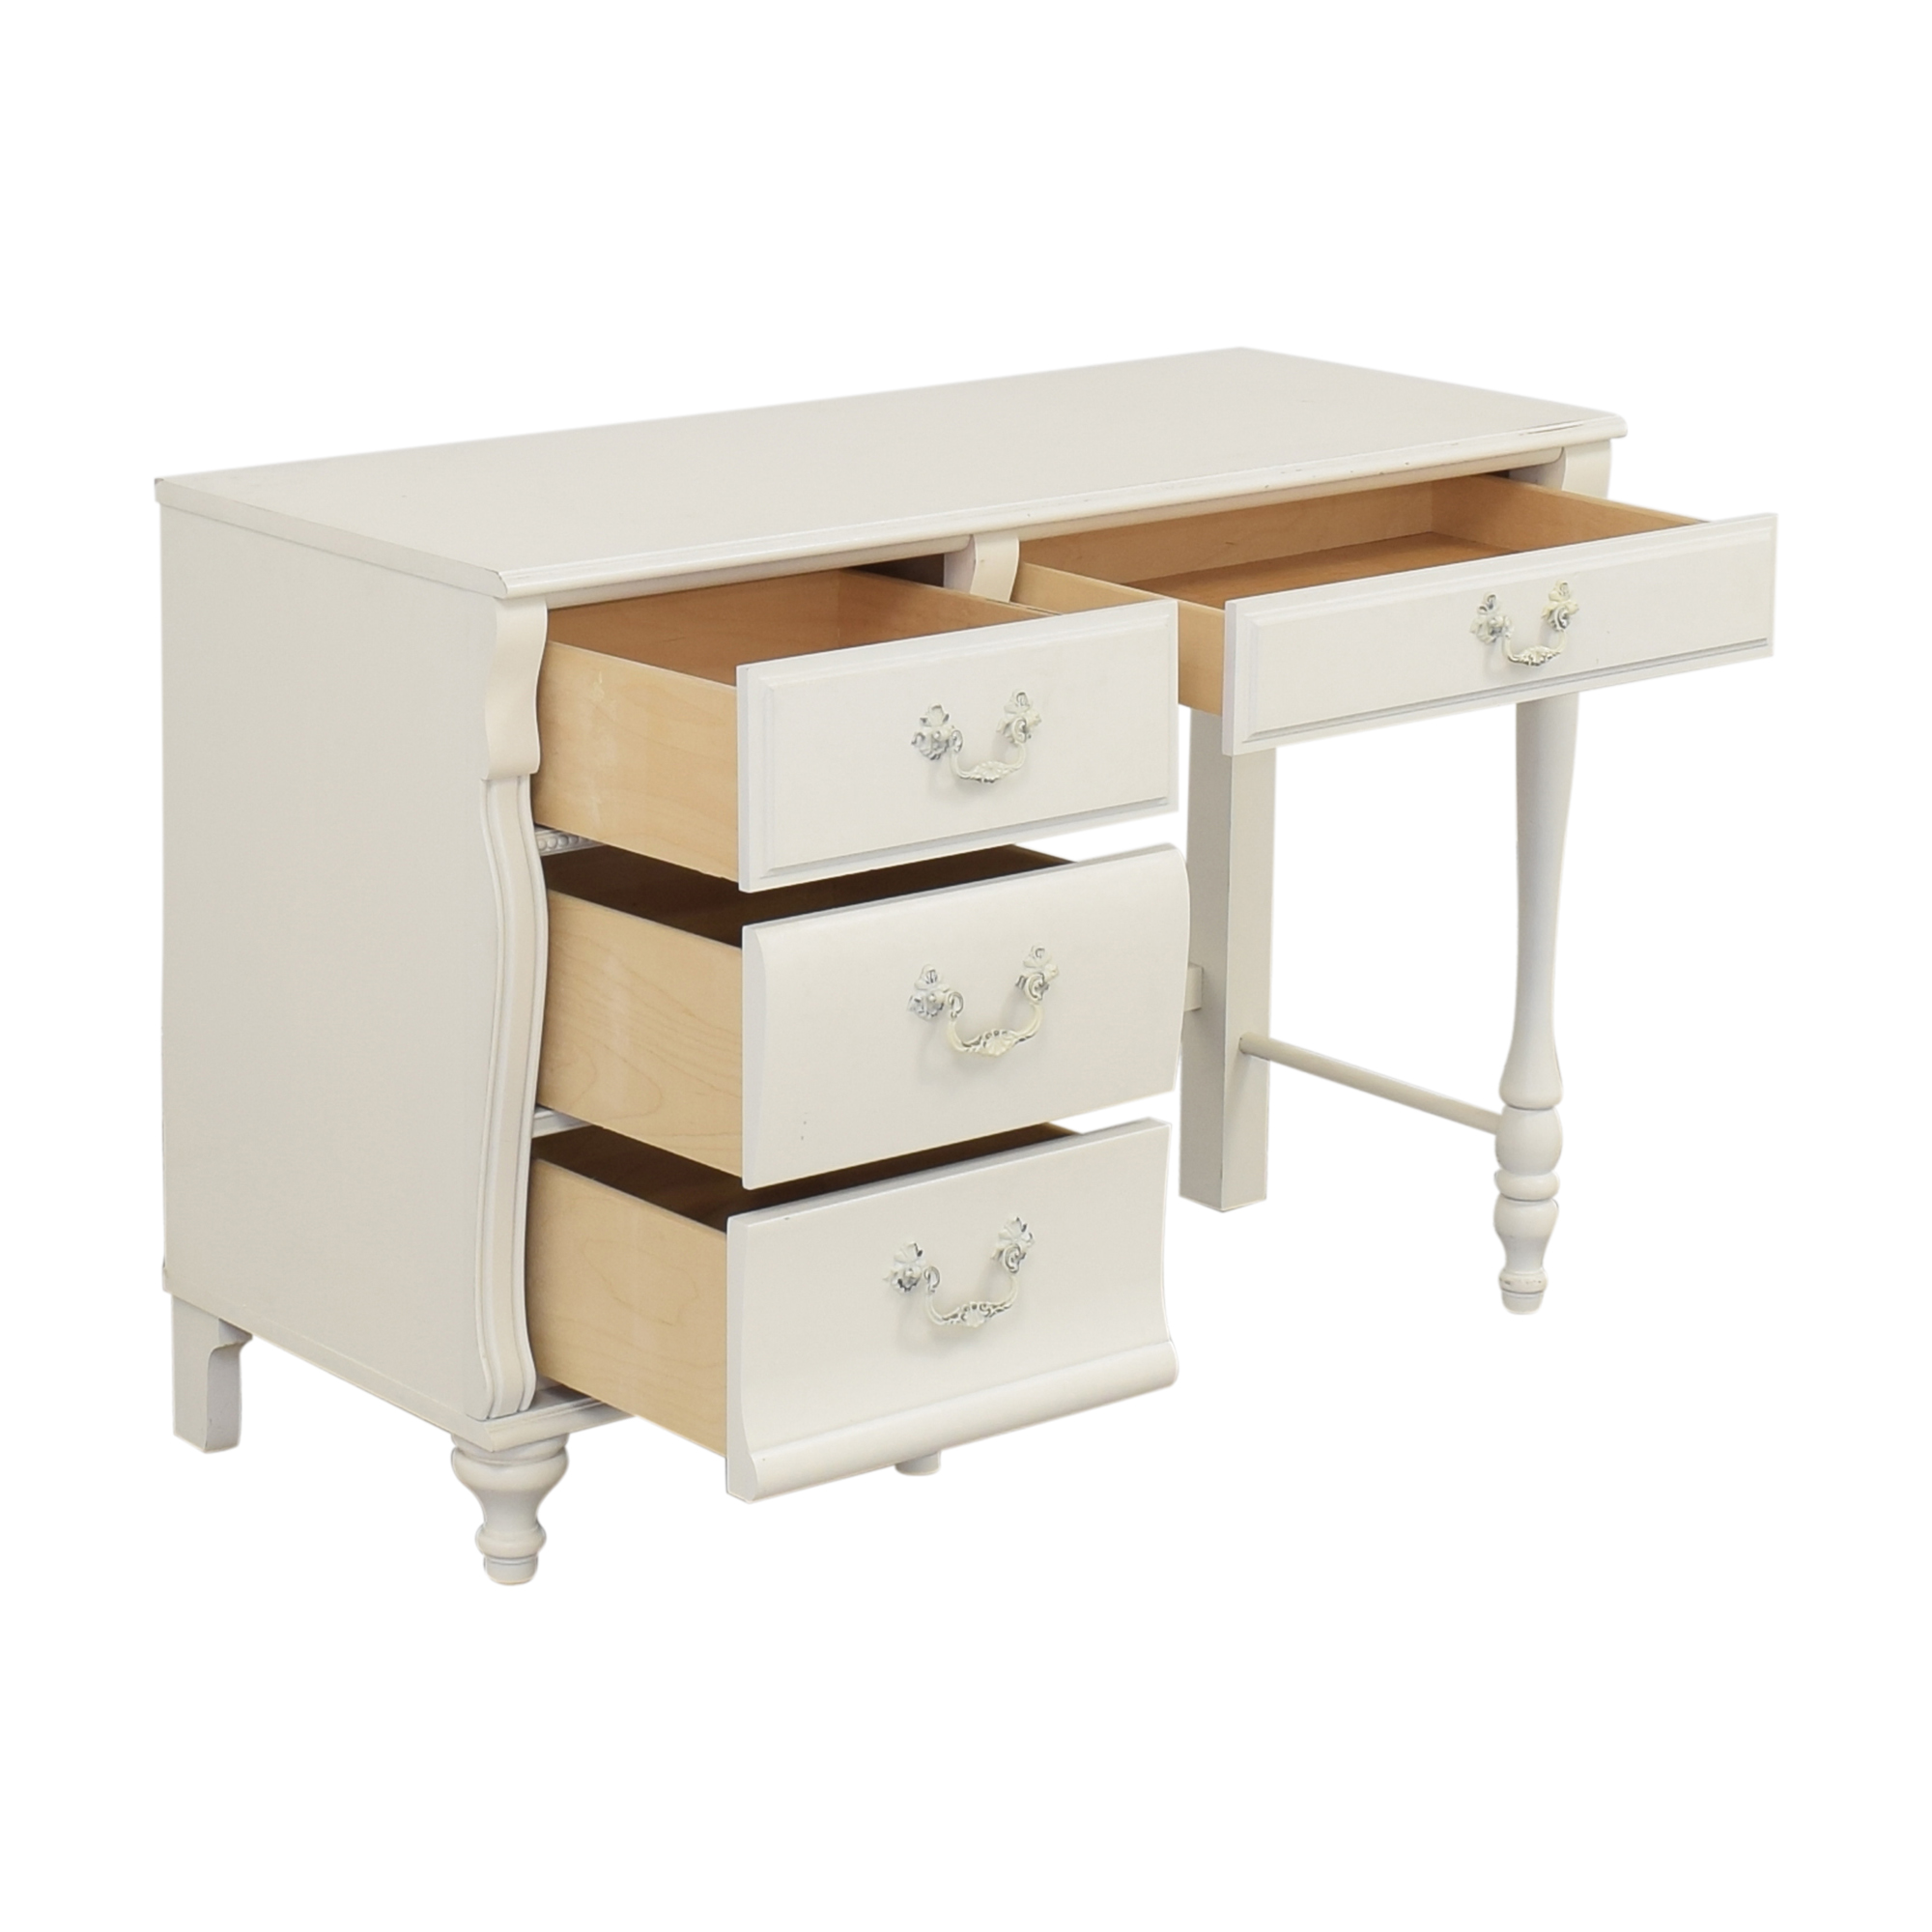 Stanley Furniture Stanley Furniture Desk with Chair discount